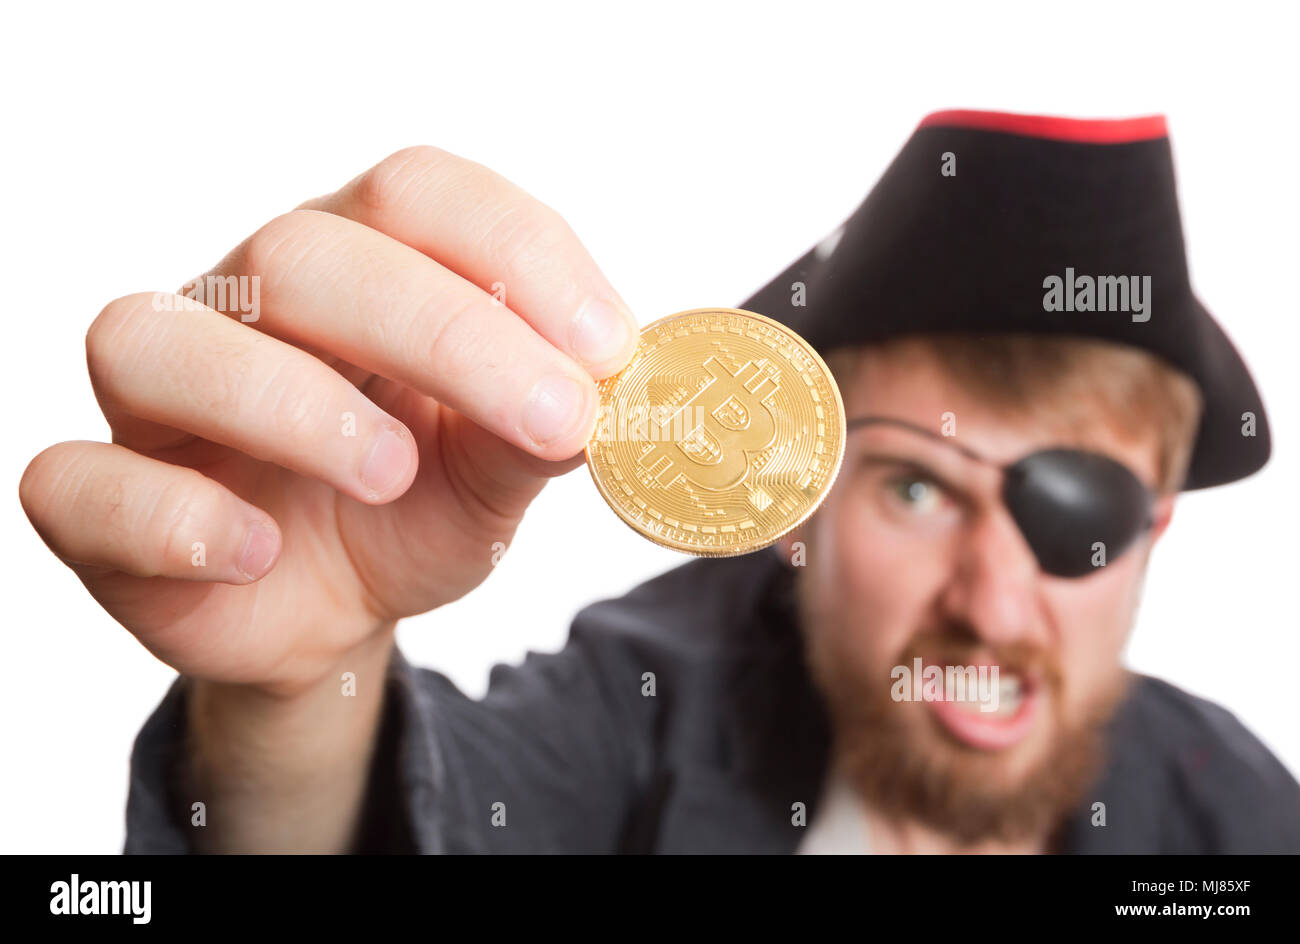 A pirate holding a bitcoin up and grimacing, banking concept. - Stock Image